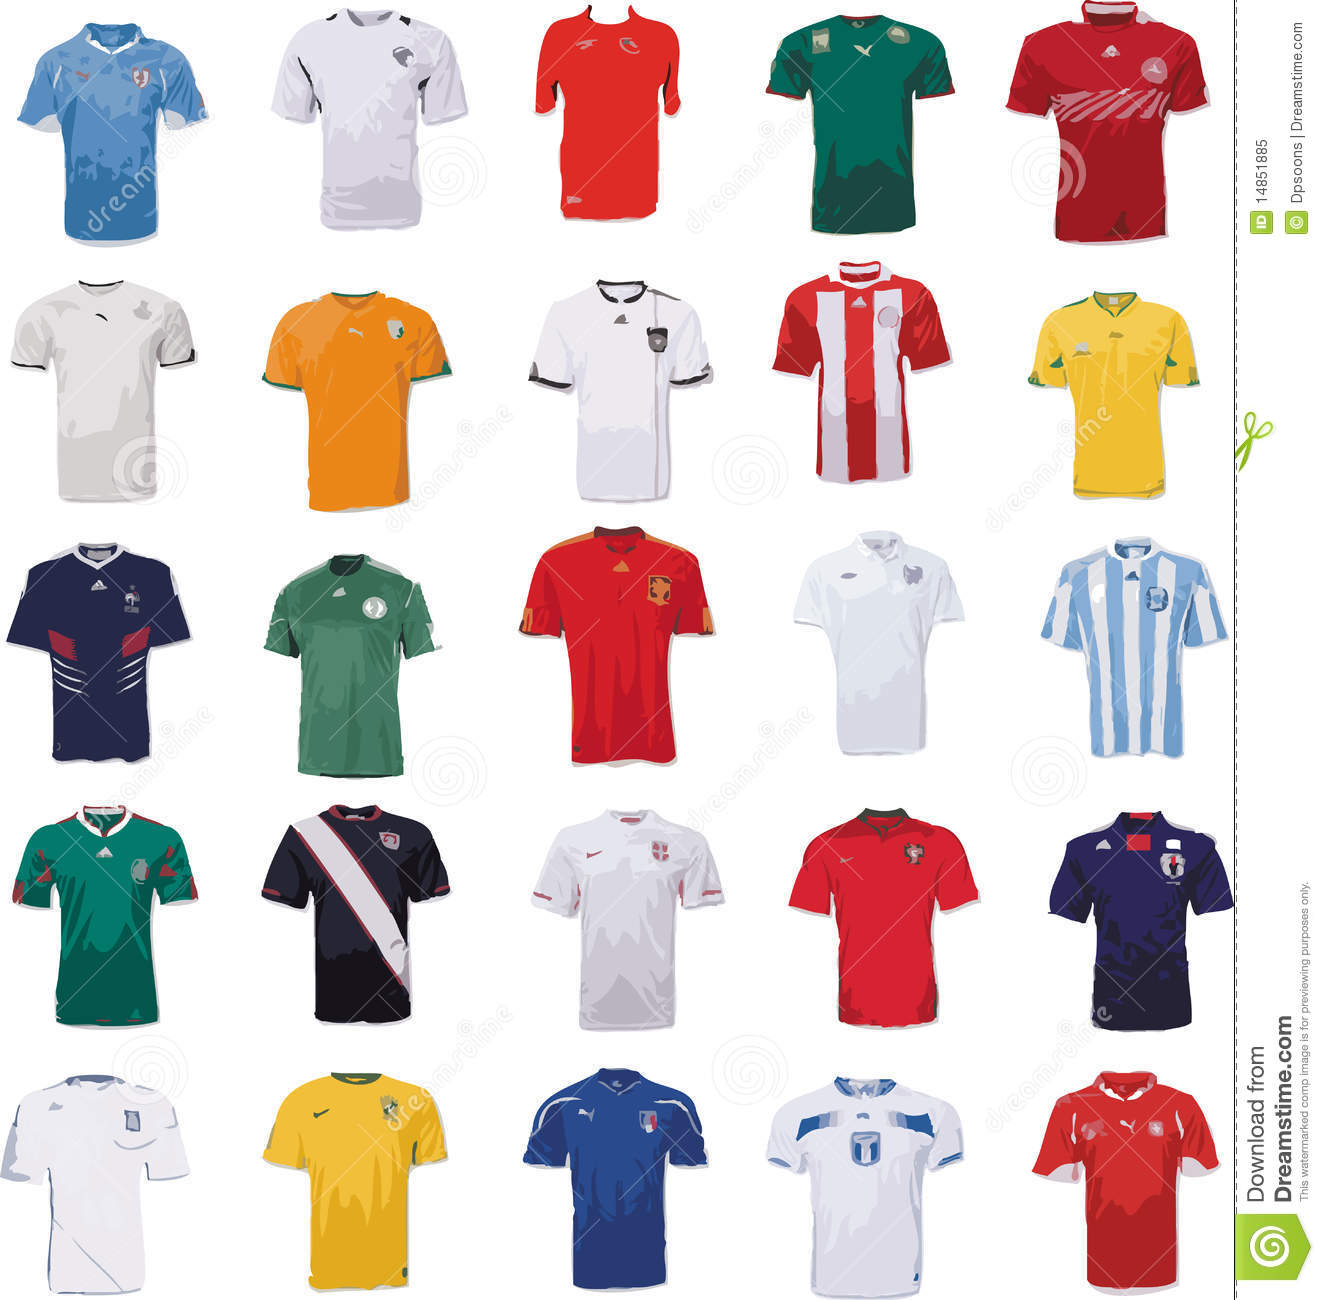 World Cup Football Jersey Royalty Free Stock Photo Image